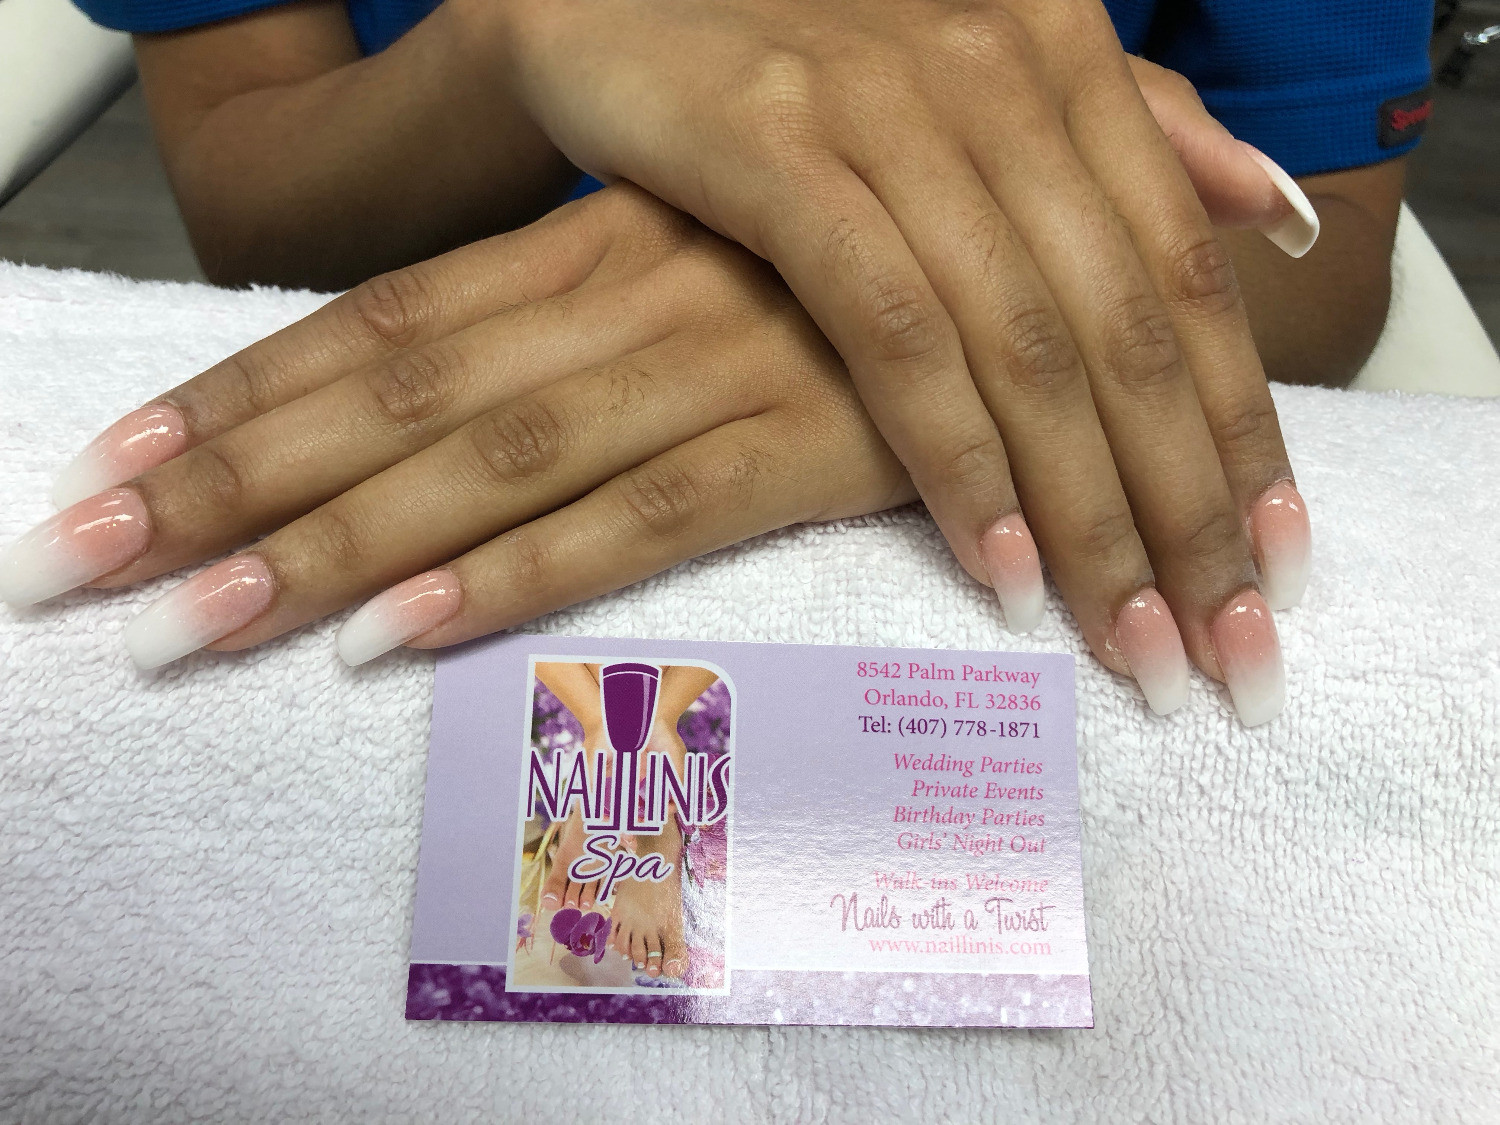 Naillinis - Luxury Nail and Spa in Disney Spring, Orlando FL